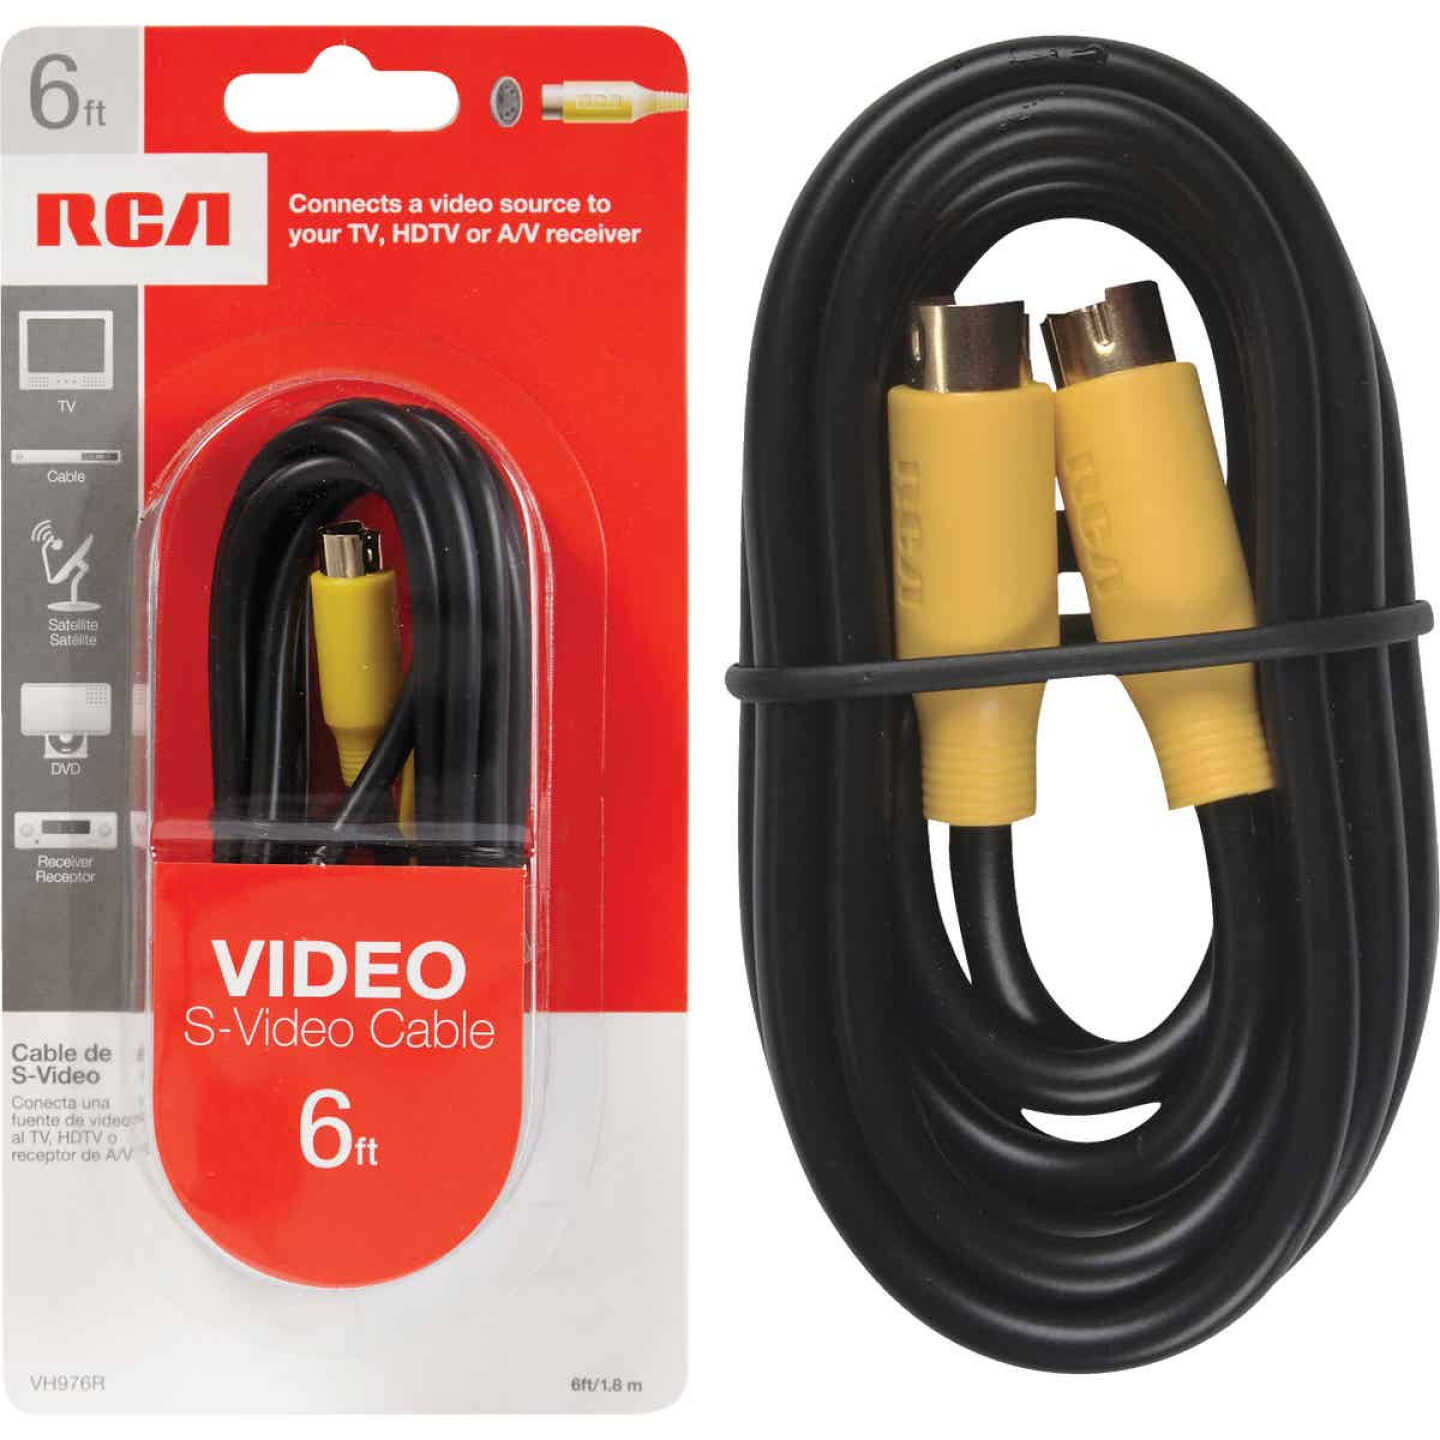 RCA 6 Ft. S-Video Cable Image 1